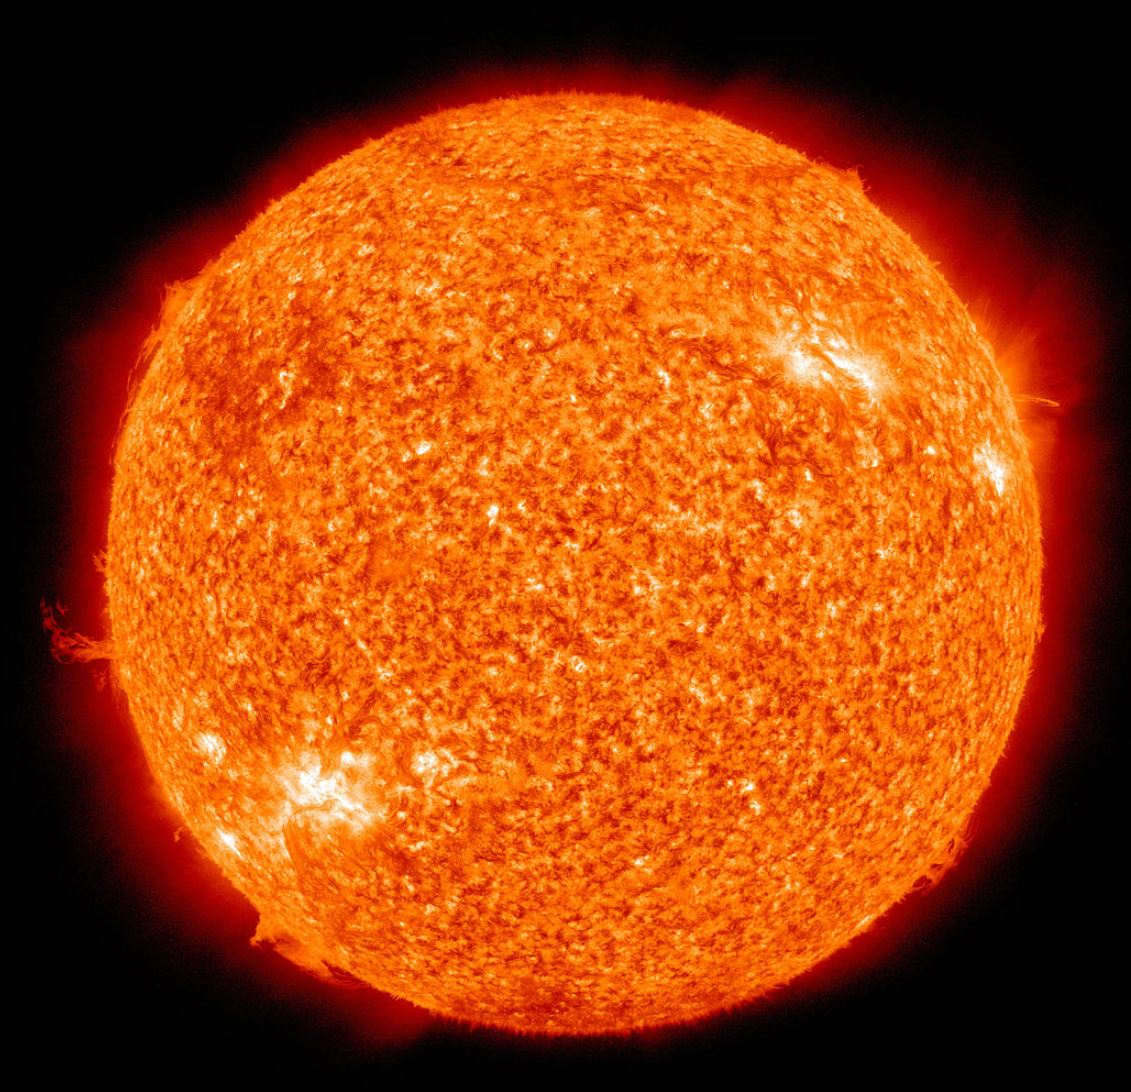 Our sun, photographed at 304 angstroms by the Atmospheric Imaging Assembly (AIA 304) of NASA's Solar Dynamics Observatory (SDO). - Image Credit:  NASA/SDO (AIA) via Wikimedia Commons